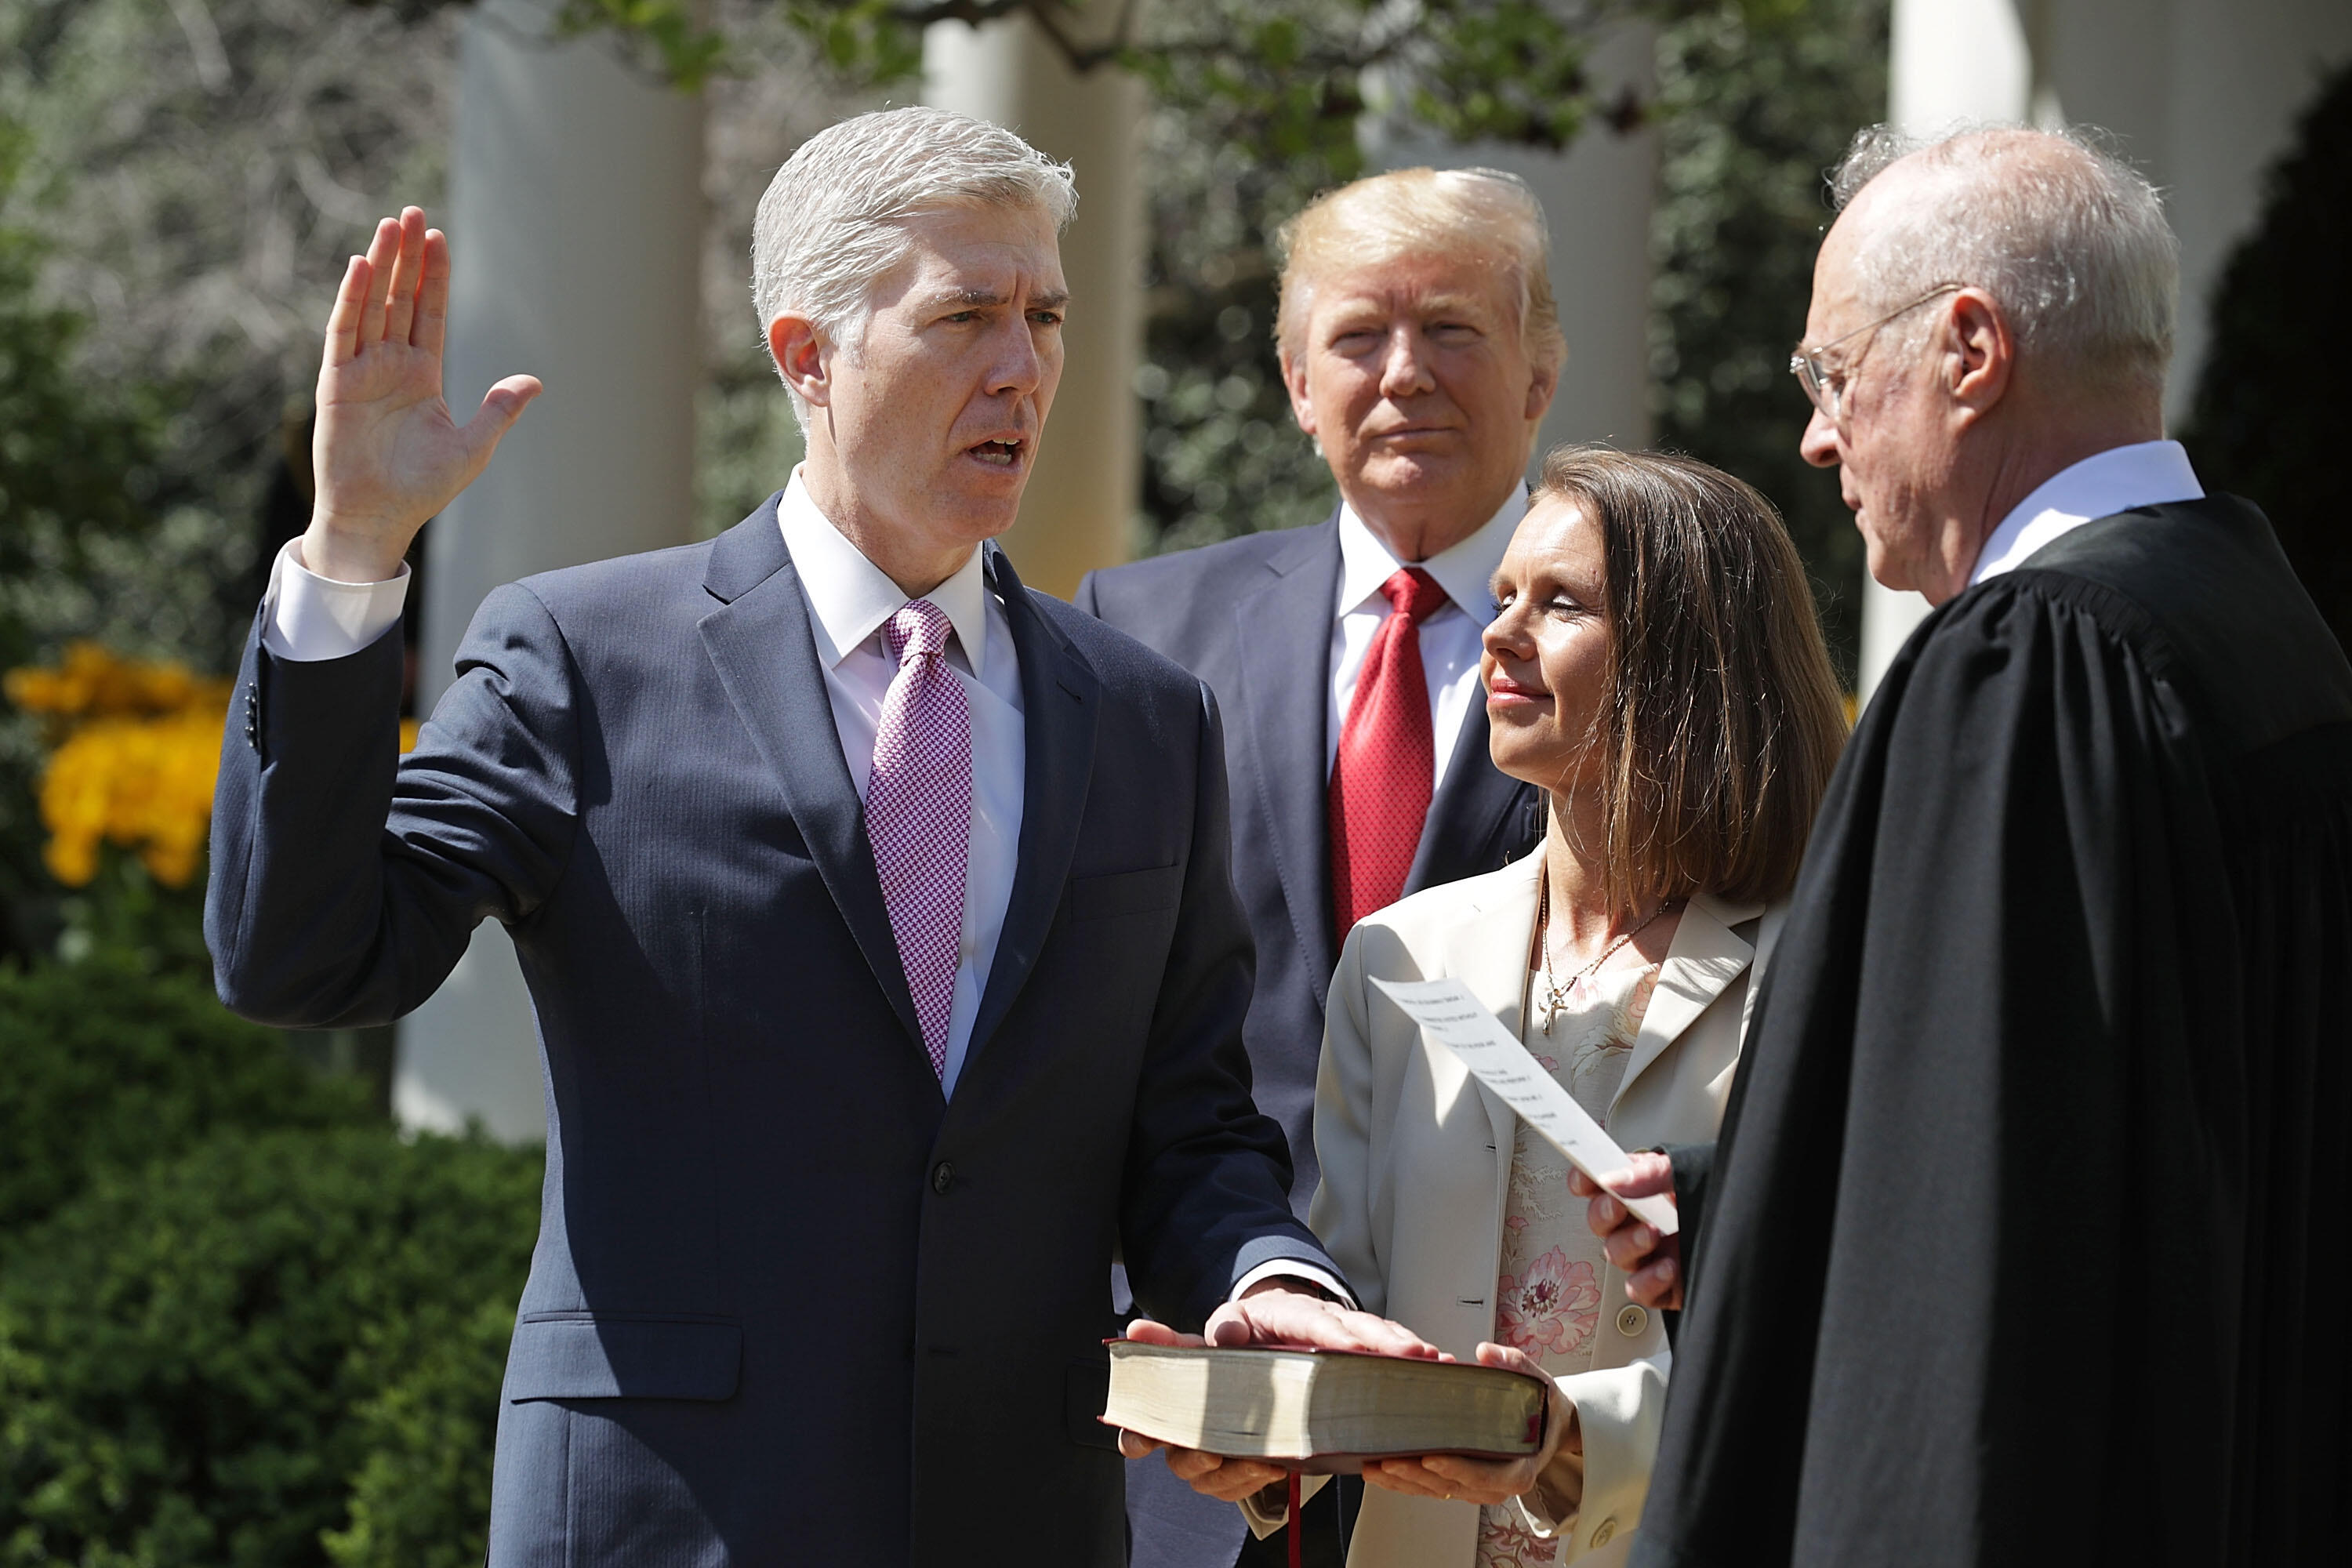 WASHINGTON, DC - APRIL 10:  U.S. Supreme Court Associate Justice Anthony Kennedy (R) administers the judicial oath to Judge Neil Gorsuch (L) as his wife Marie Louise Gorshuch holds a bible and President Donald Trump looks on during a ceremony in the Rose